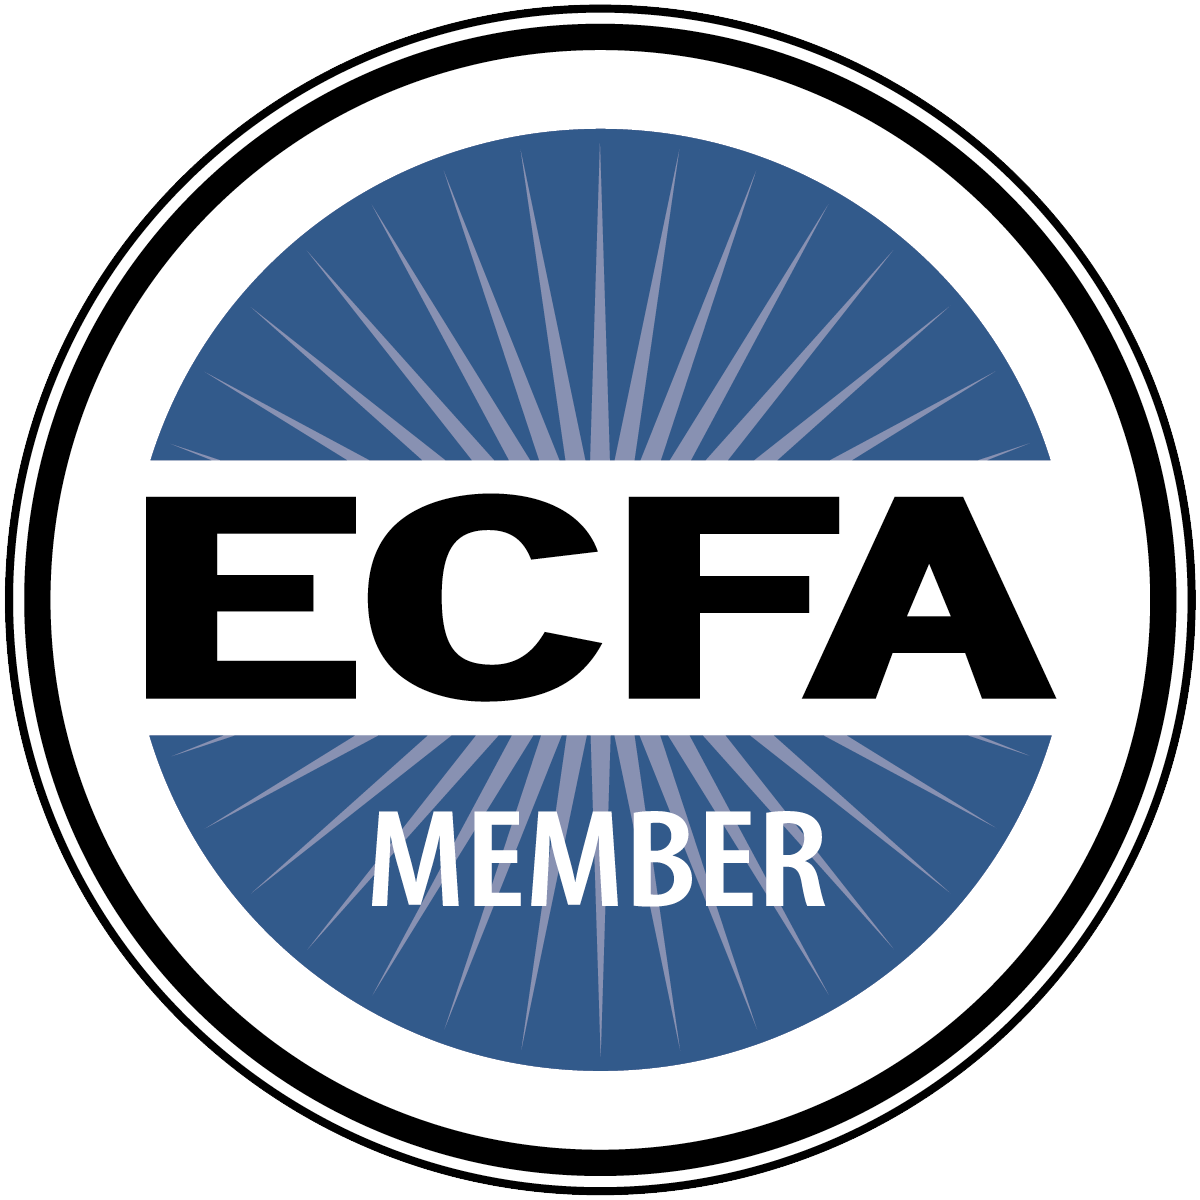 Evangelical Council for Financial Accountability Member Profile